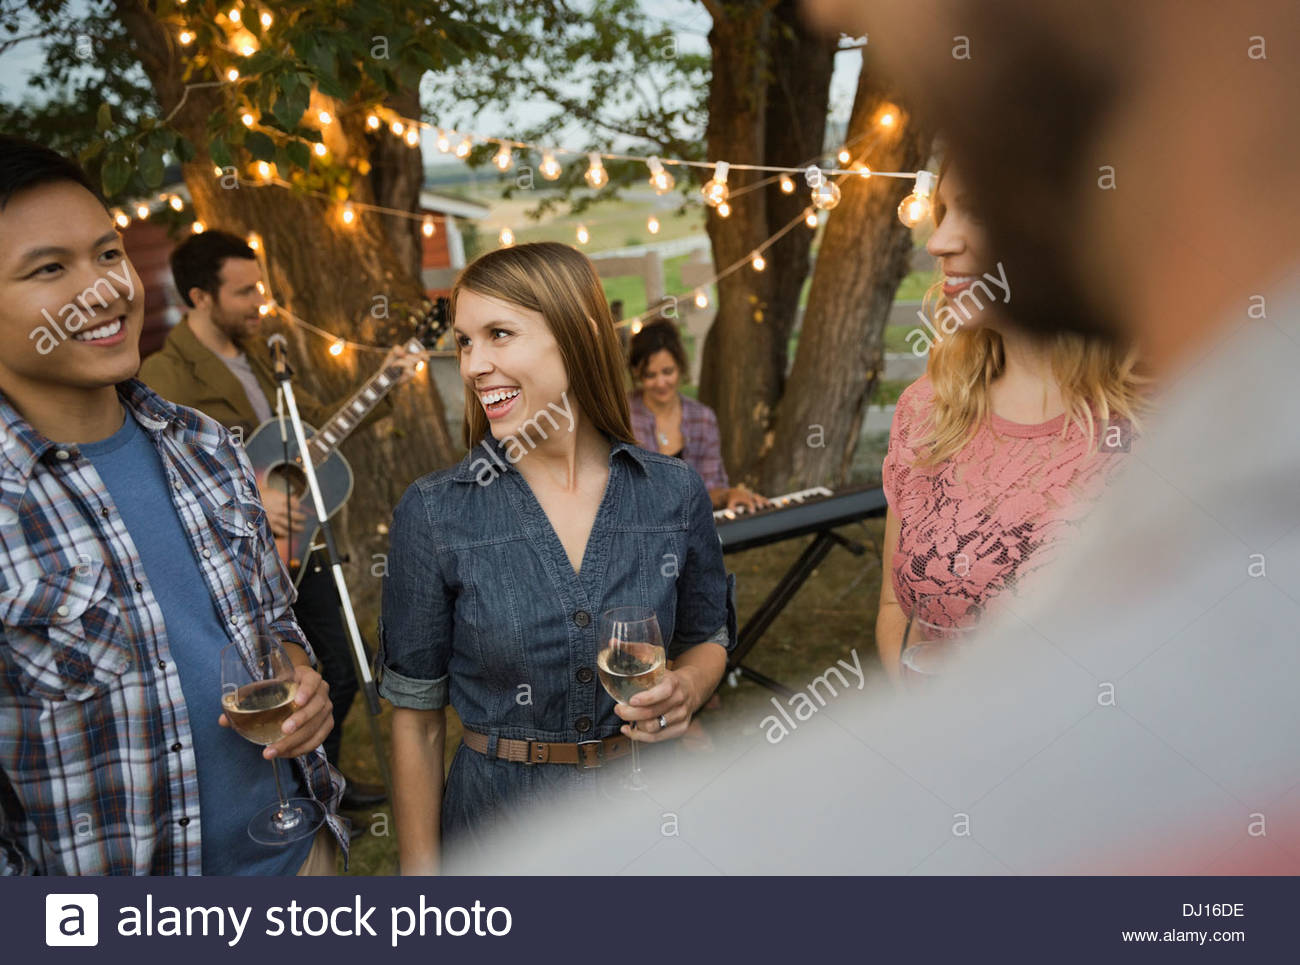 Multiethnic friends enjoying outdoor party with band playing - Stock Image